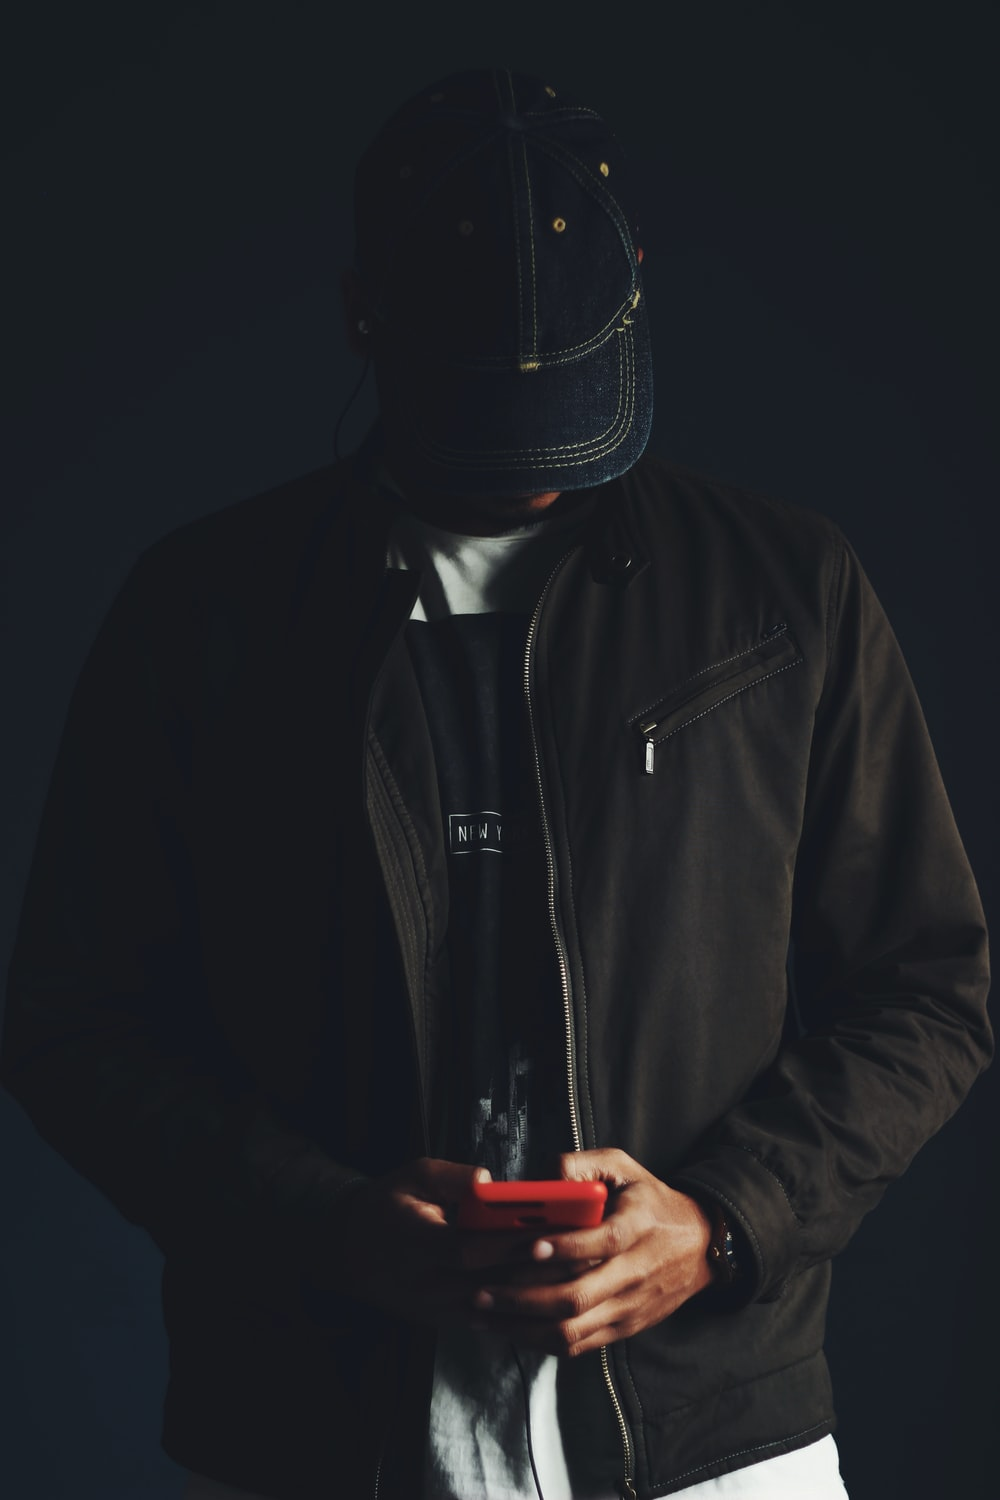 man in black zip up jacket wearing black mask